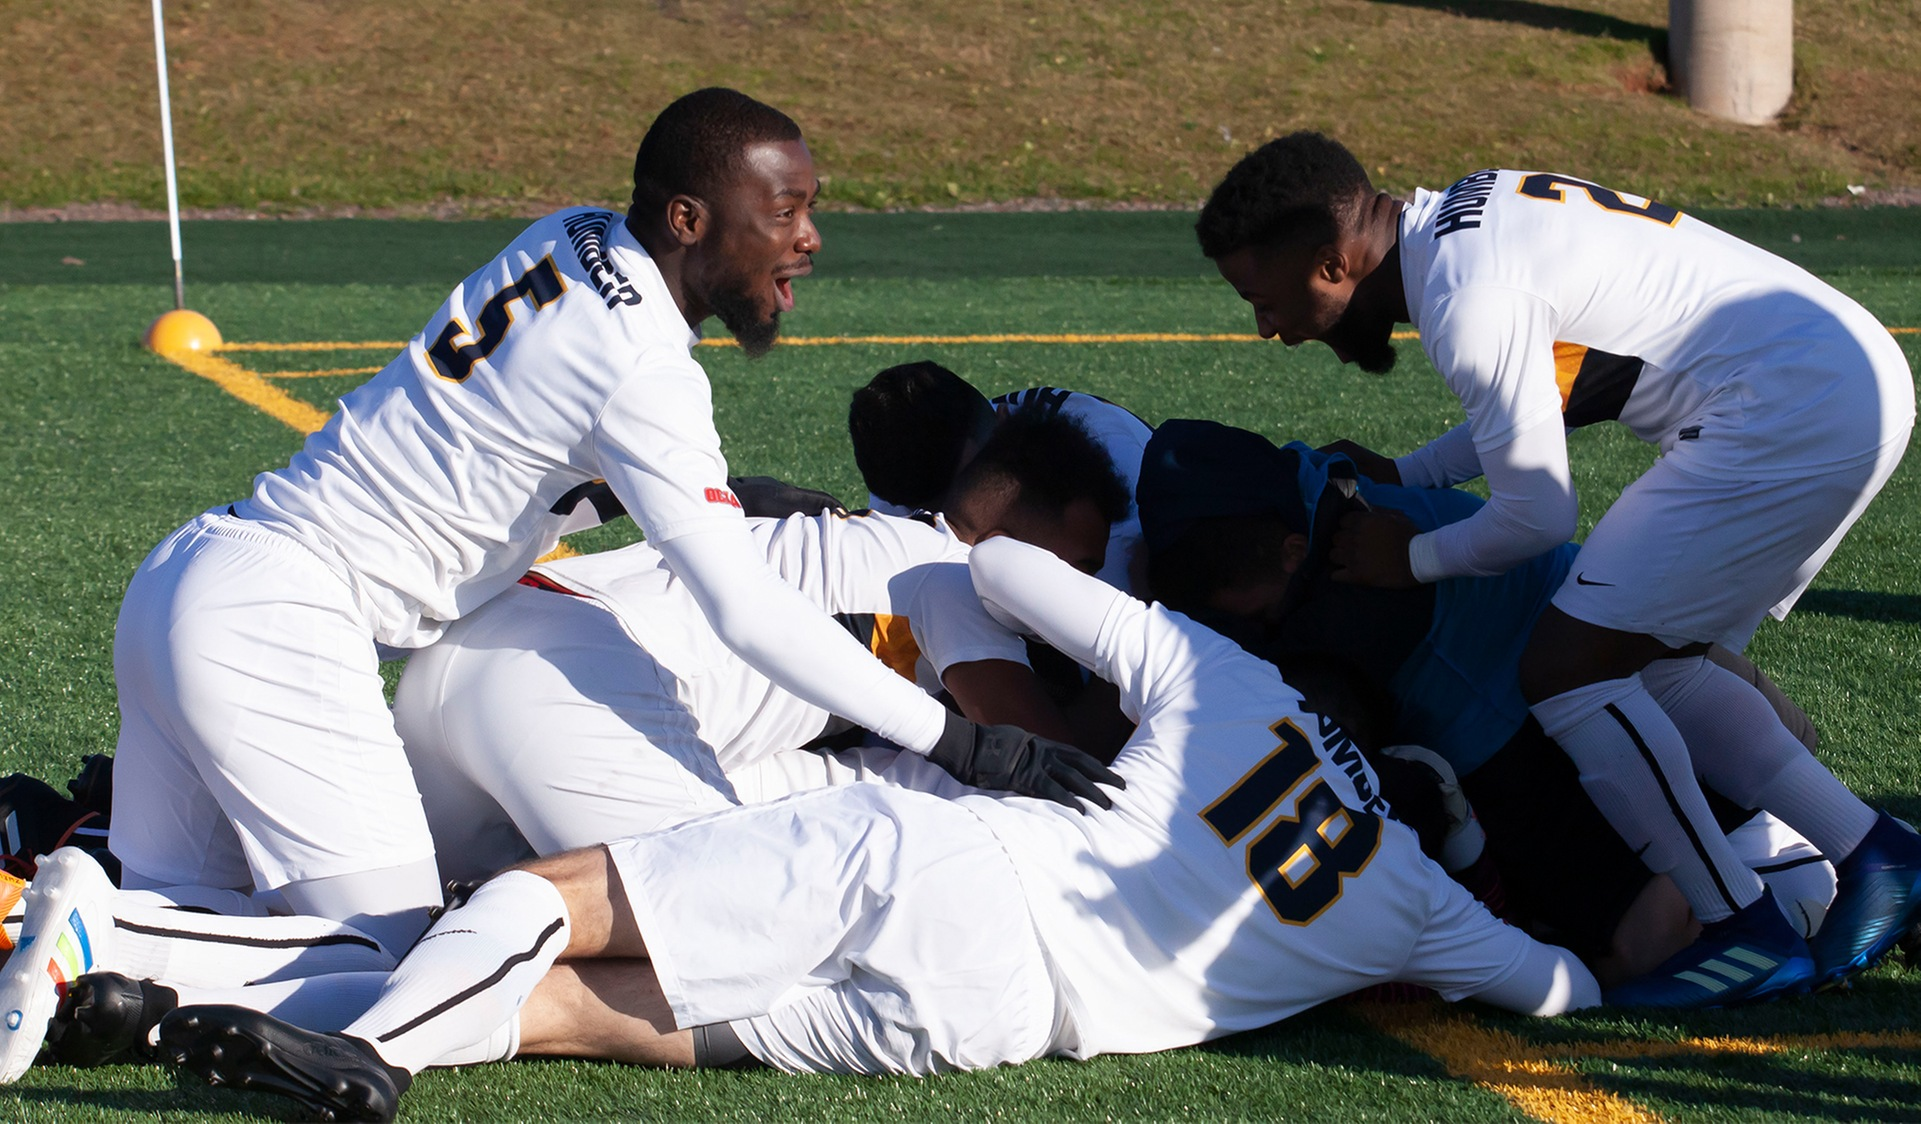 MEN'S SOCCER WIN ON PENALTY KICKS, ADVANCE TO CCAA SEMIFINAL